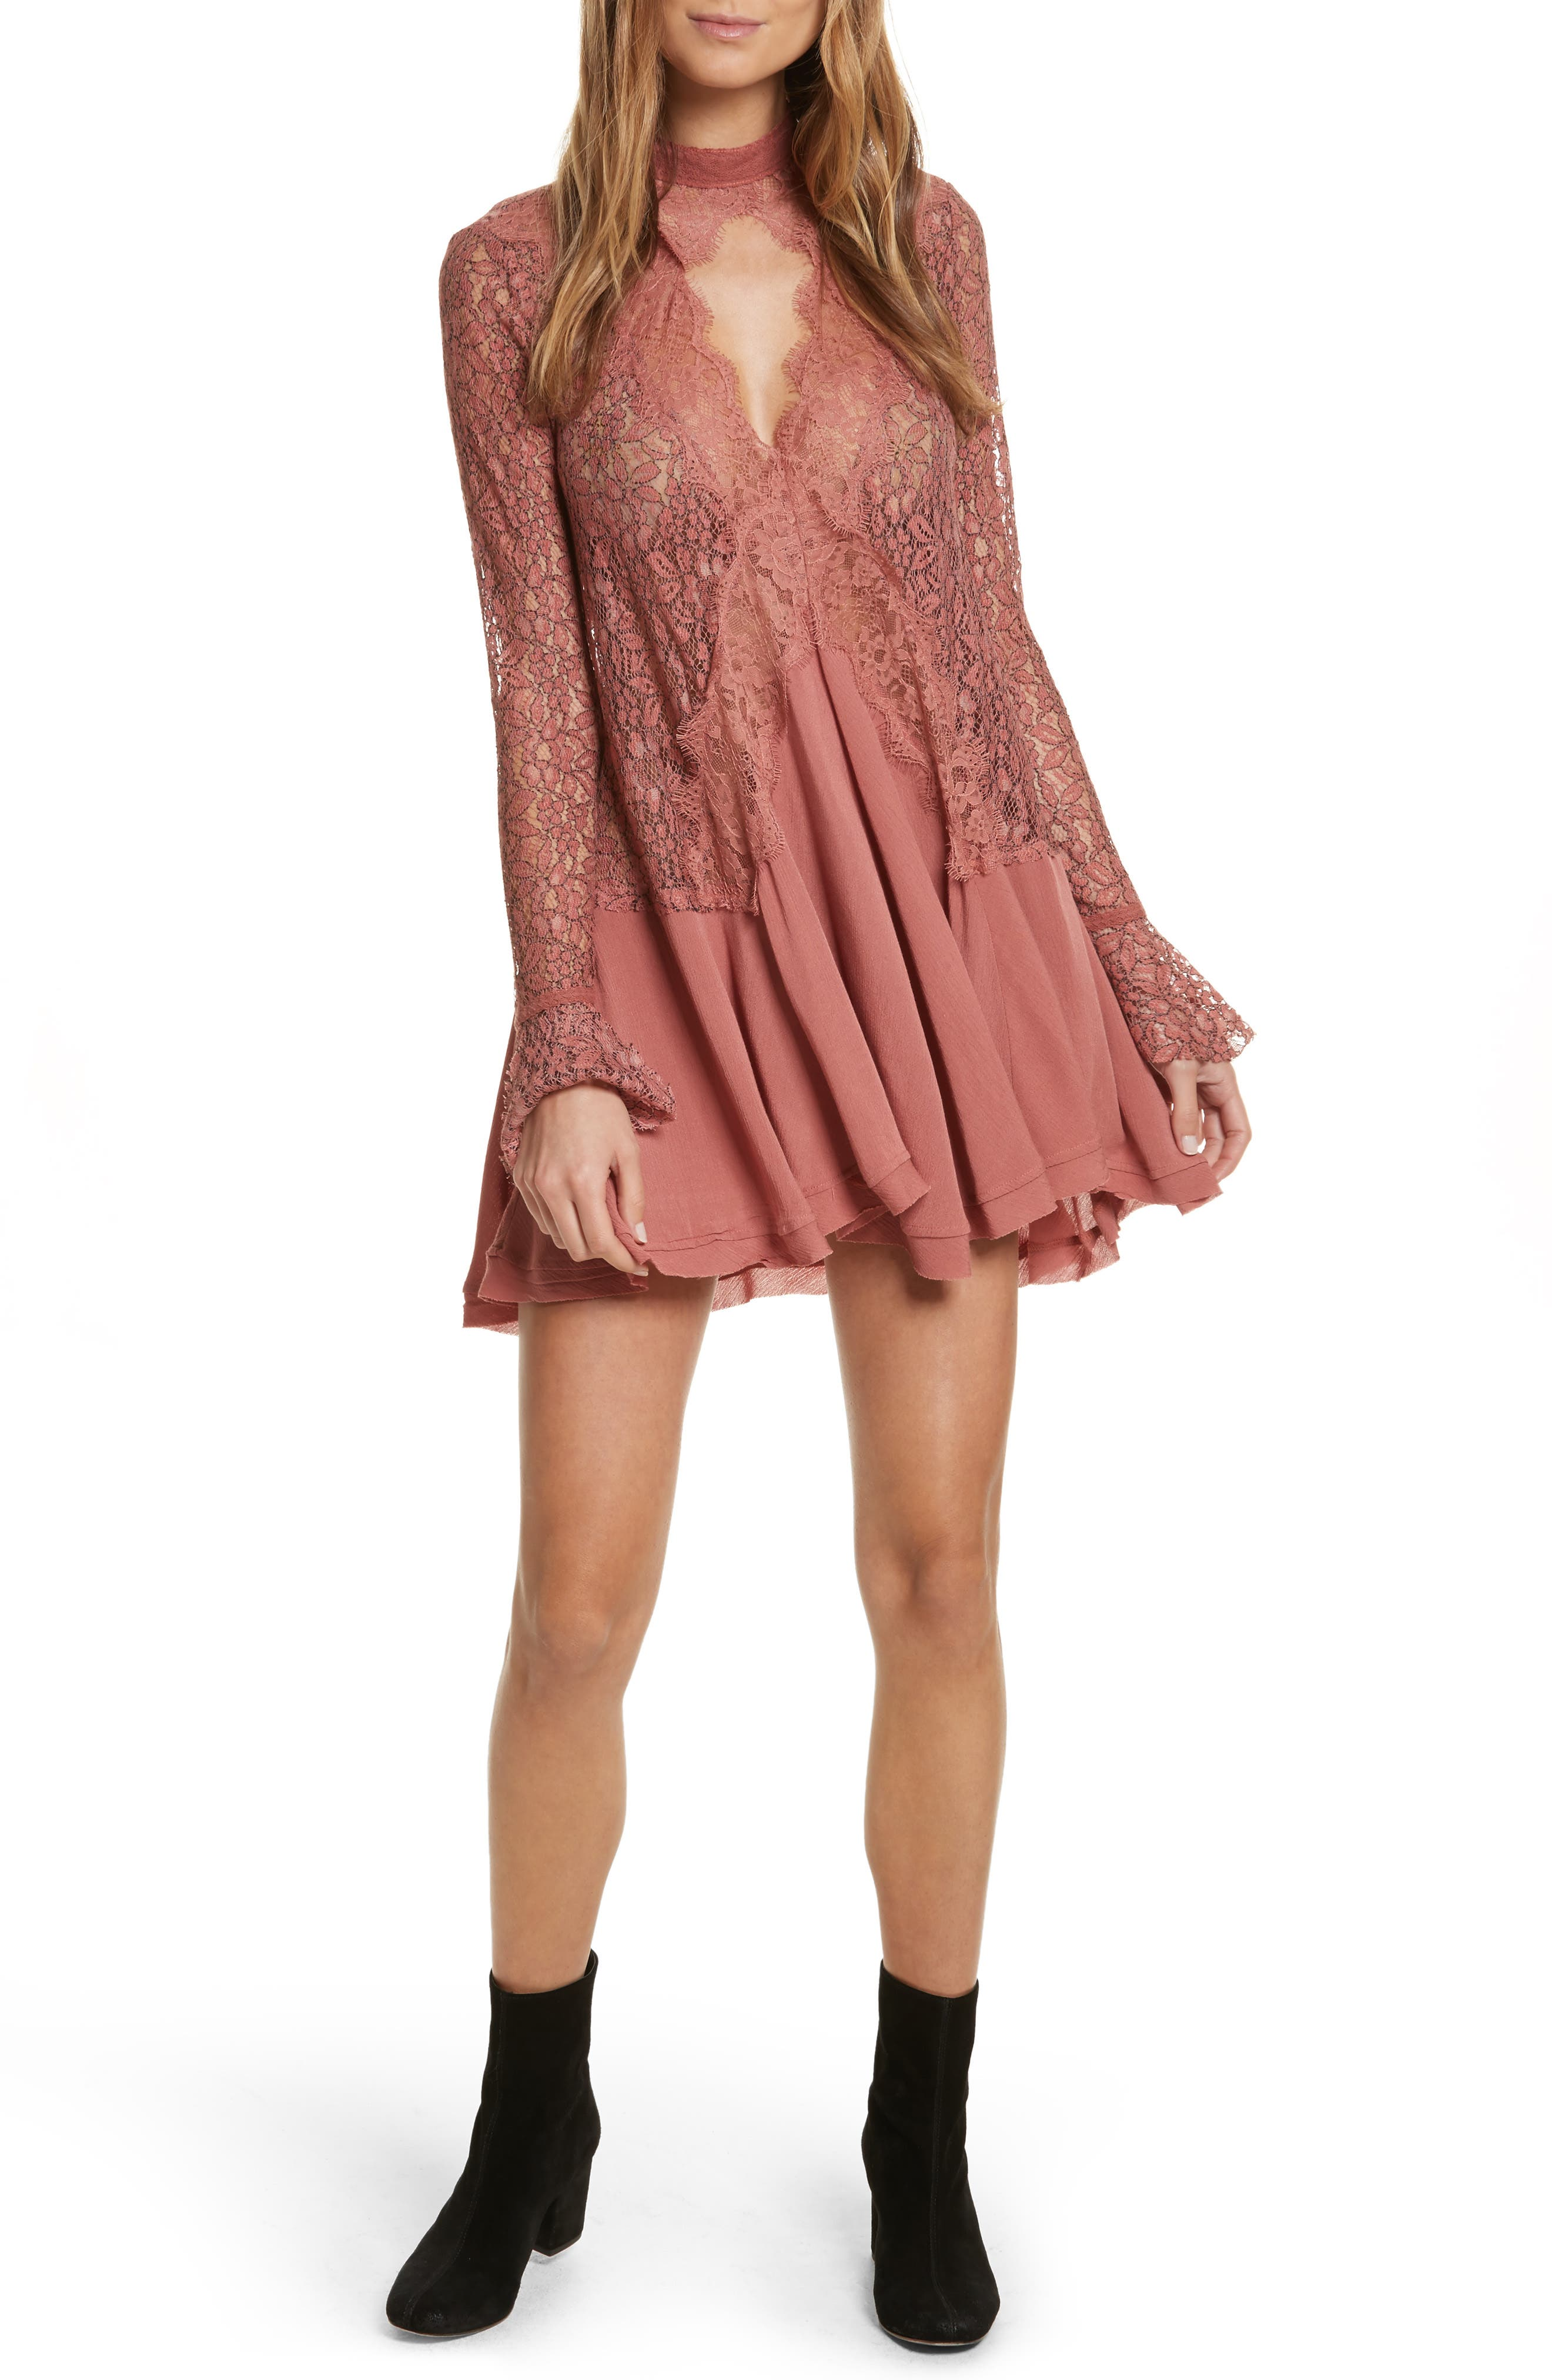 FREE PEOPLE,                             New Tell Tale Lace Minidress,                             Alternate thumbnail 5, color,                             605